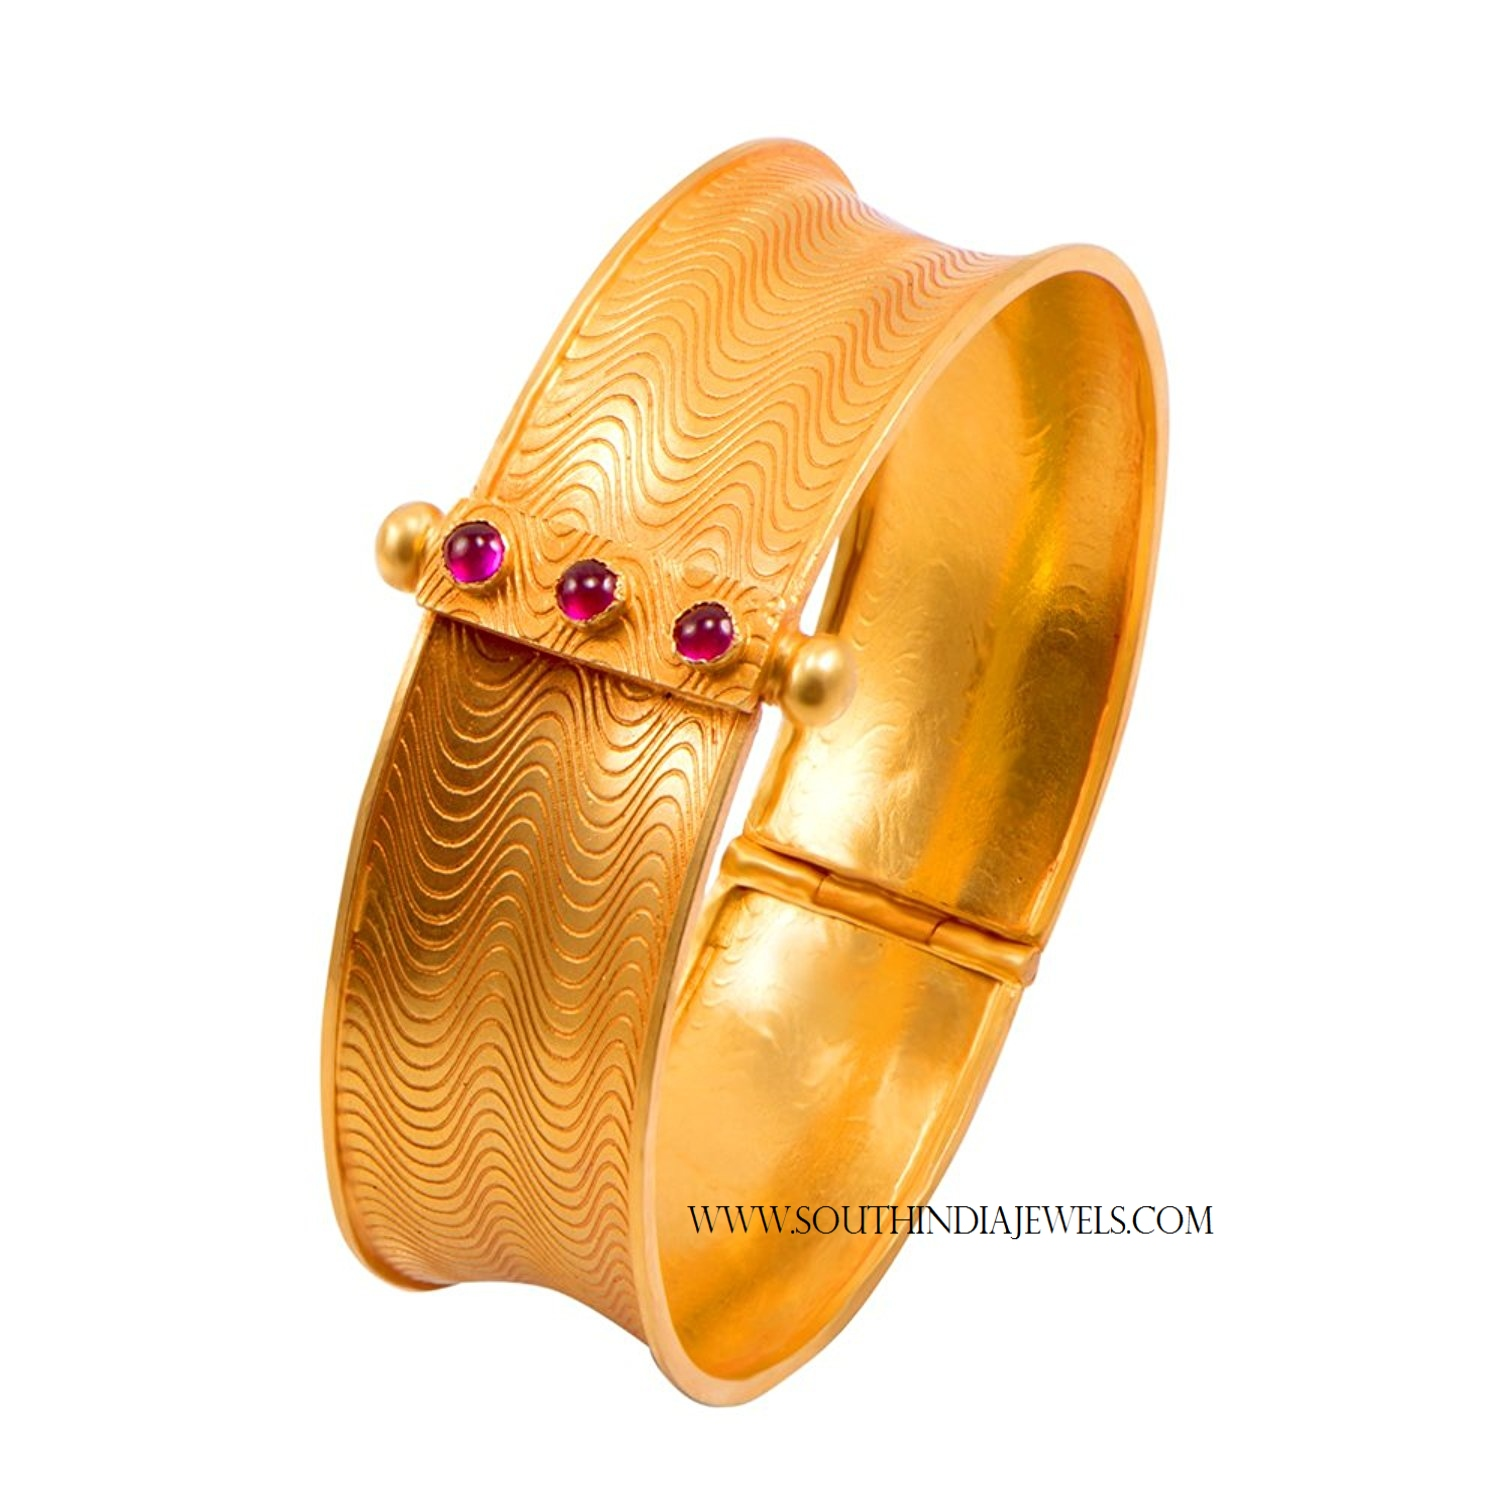 Joy alukkas Gold Bangles Designs With Price ~ South India ...